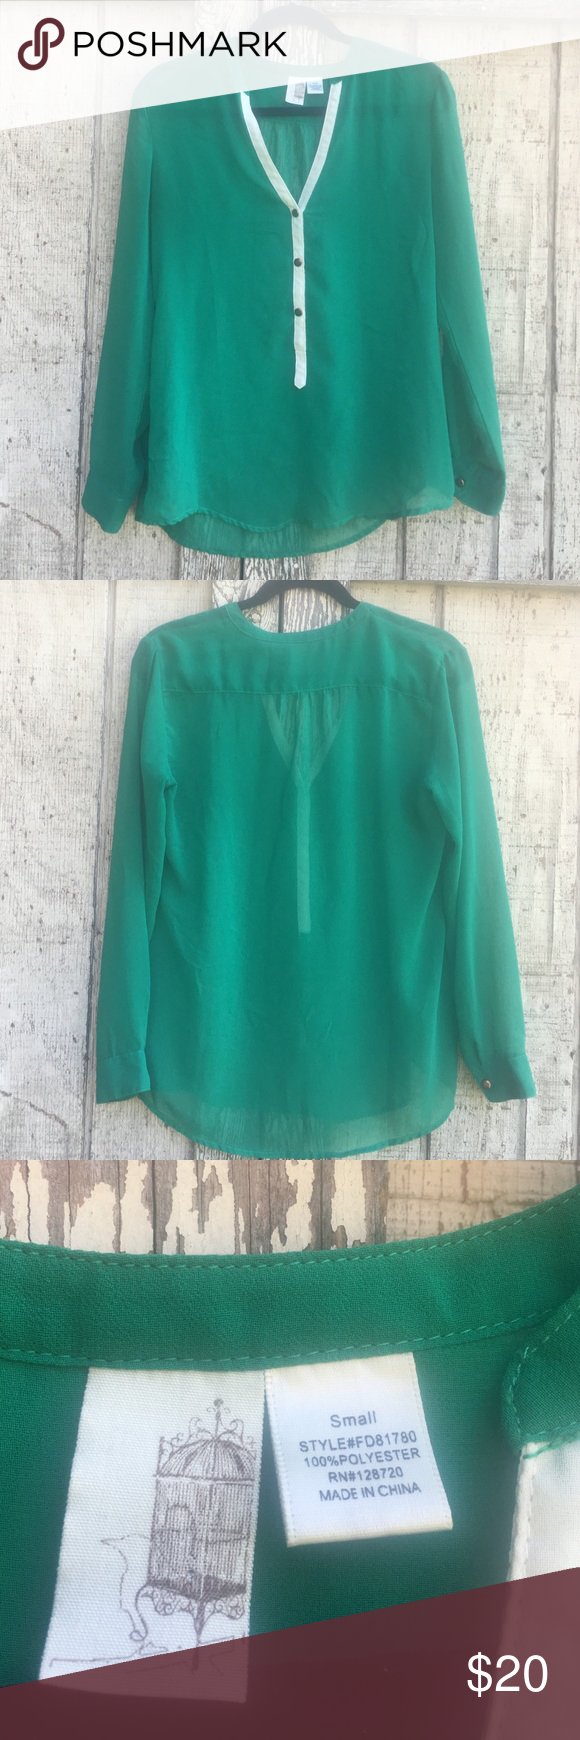 Sheer Green Long Sleeve Top This sheer green long sleeve top is perfect for fall!  Very minimal wear, no visible imperfections.  Very loose fit, looks great with boots and leggings.  100% Polyester Francesca's Collections Tops Blouses